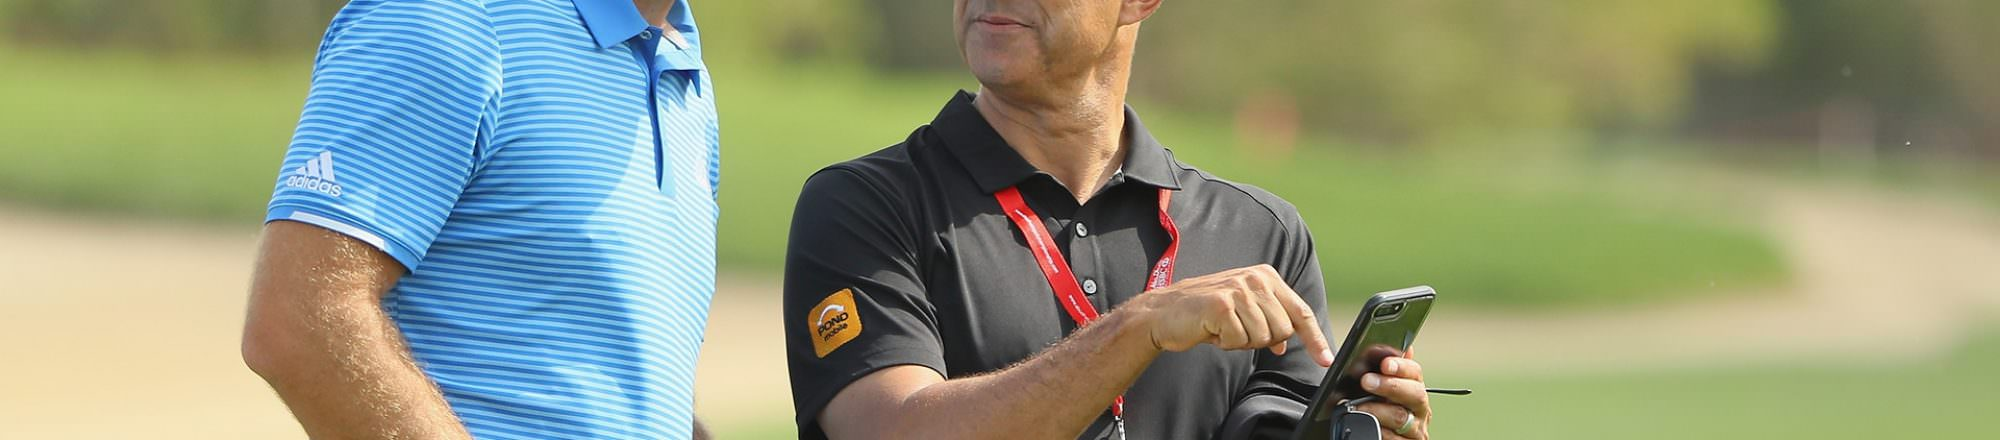 'Most golfers vastly over-estimate how far they hit the golf ball'